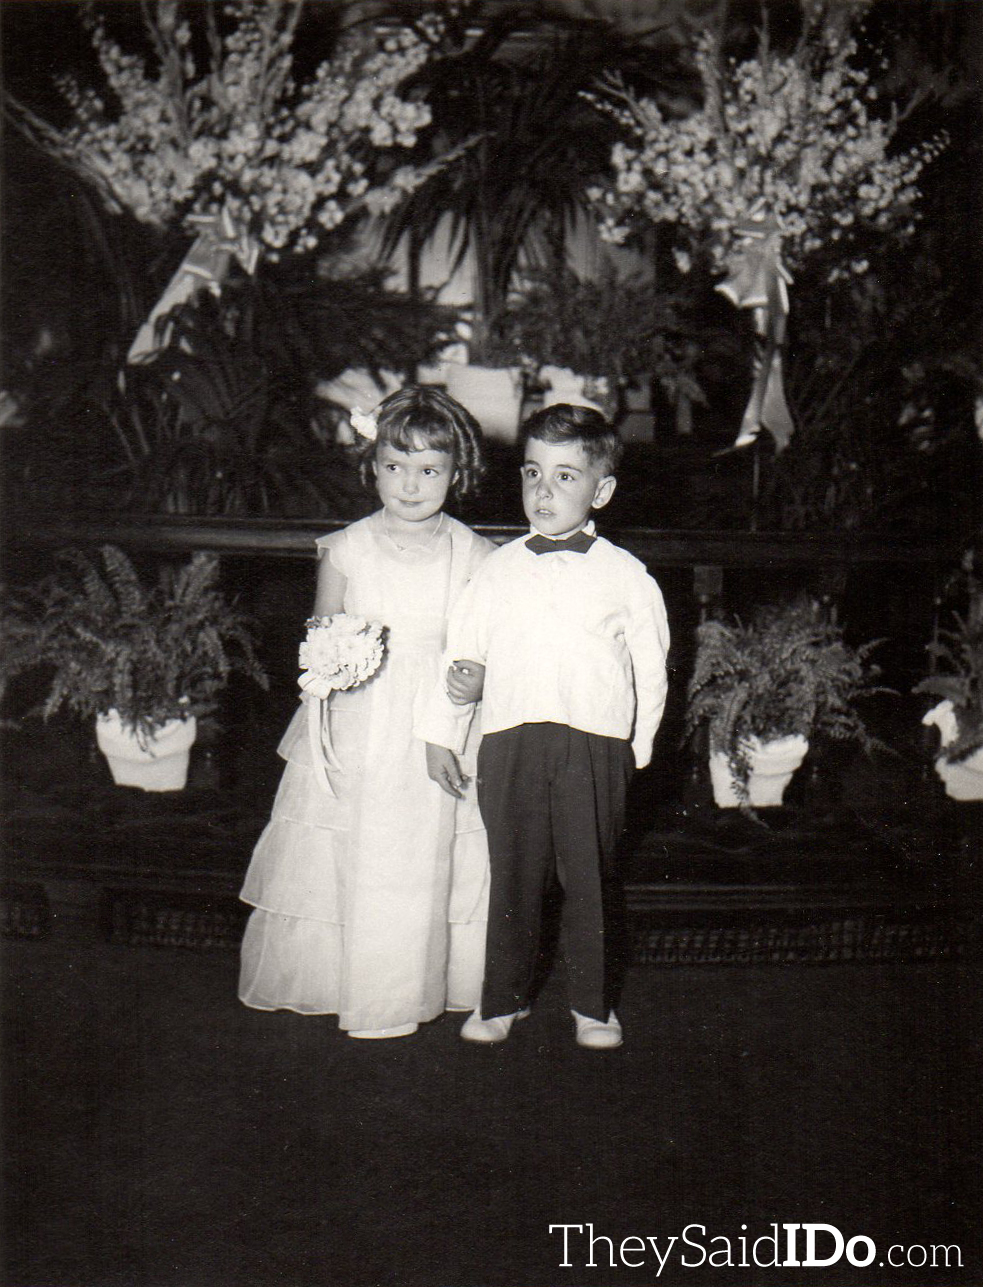 The Flower Girl and Ring Bearer Lansing, MI 1951 {TheySaidIDo.com}